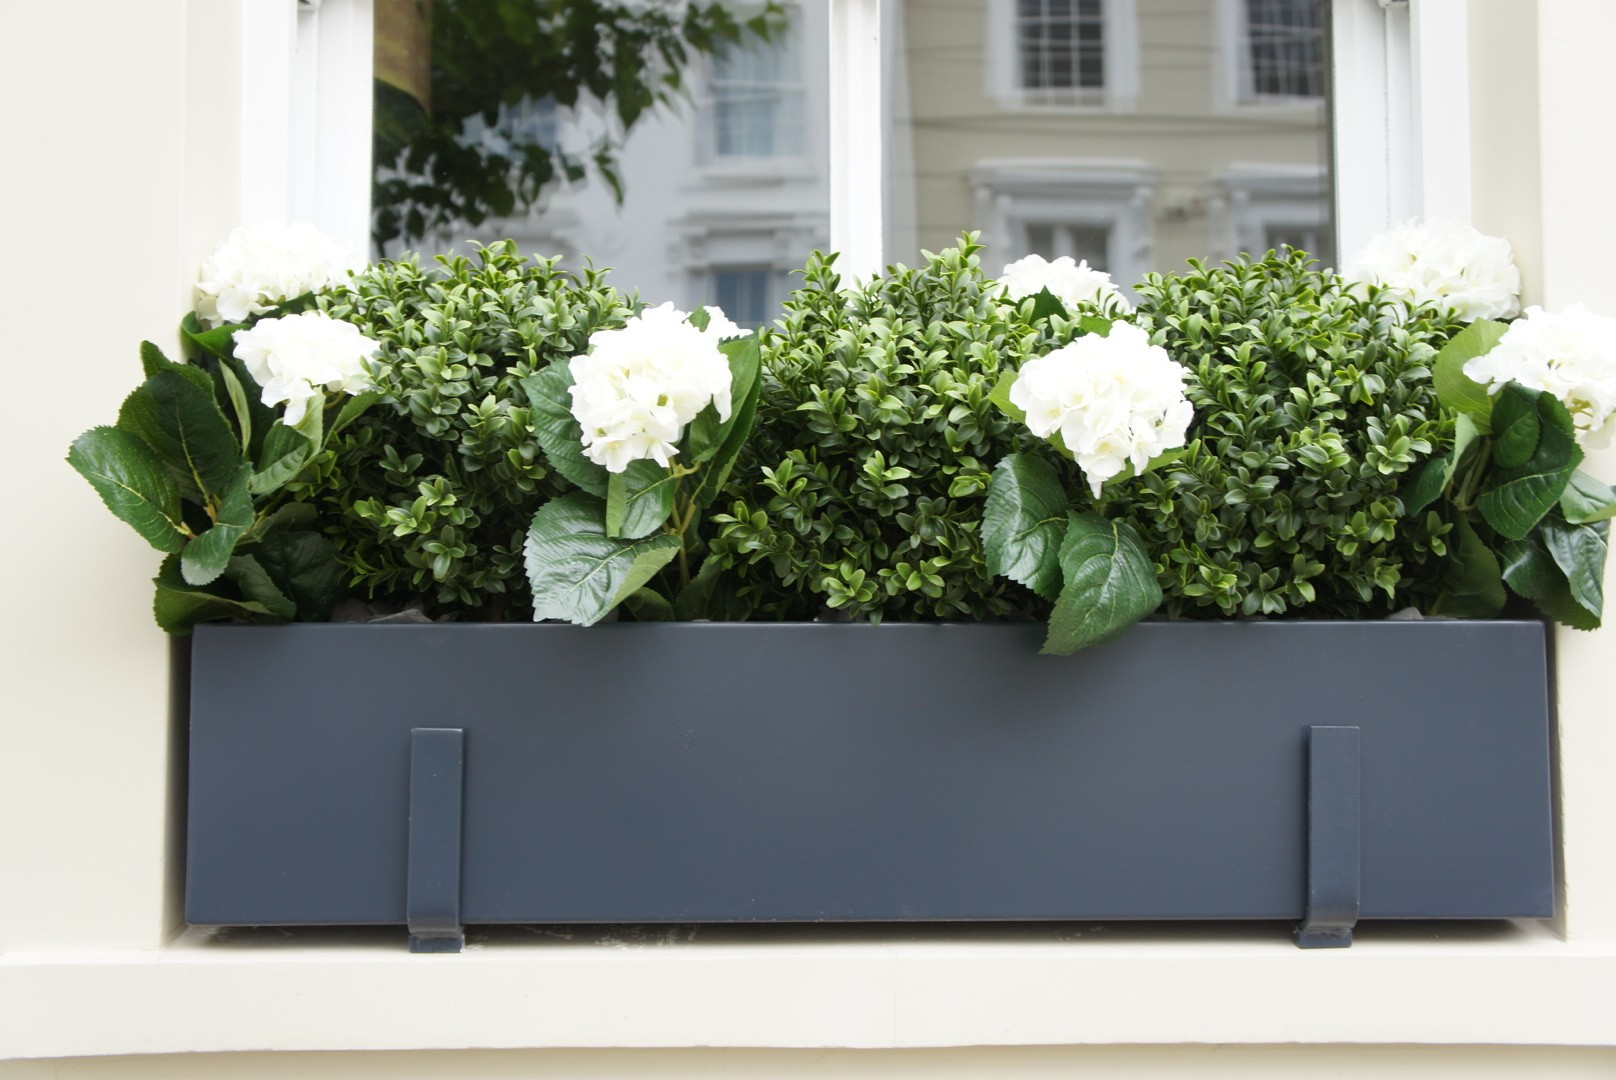 Our metal window boxes are manufactured from high quality galvanised steel and are powder coated to a colour of your choice. & Window boxes London | Design installation maintenance | London ...